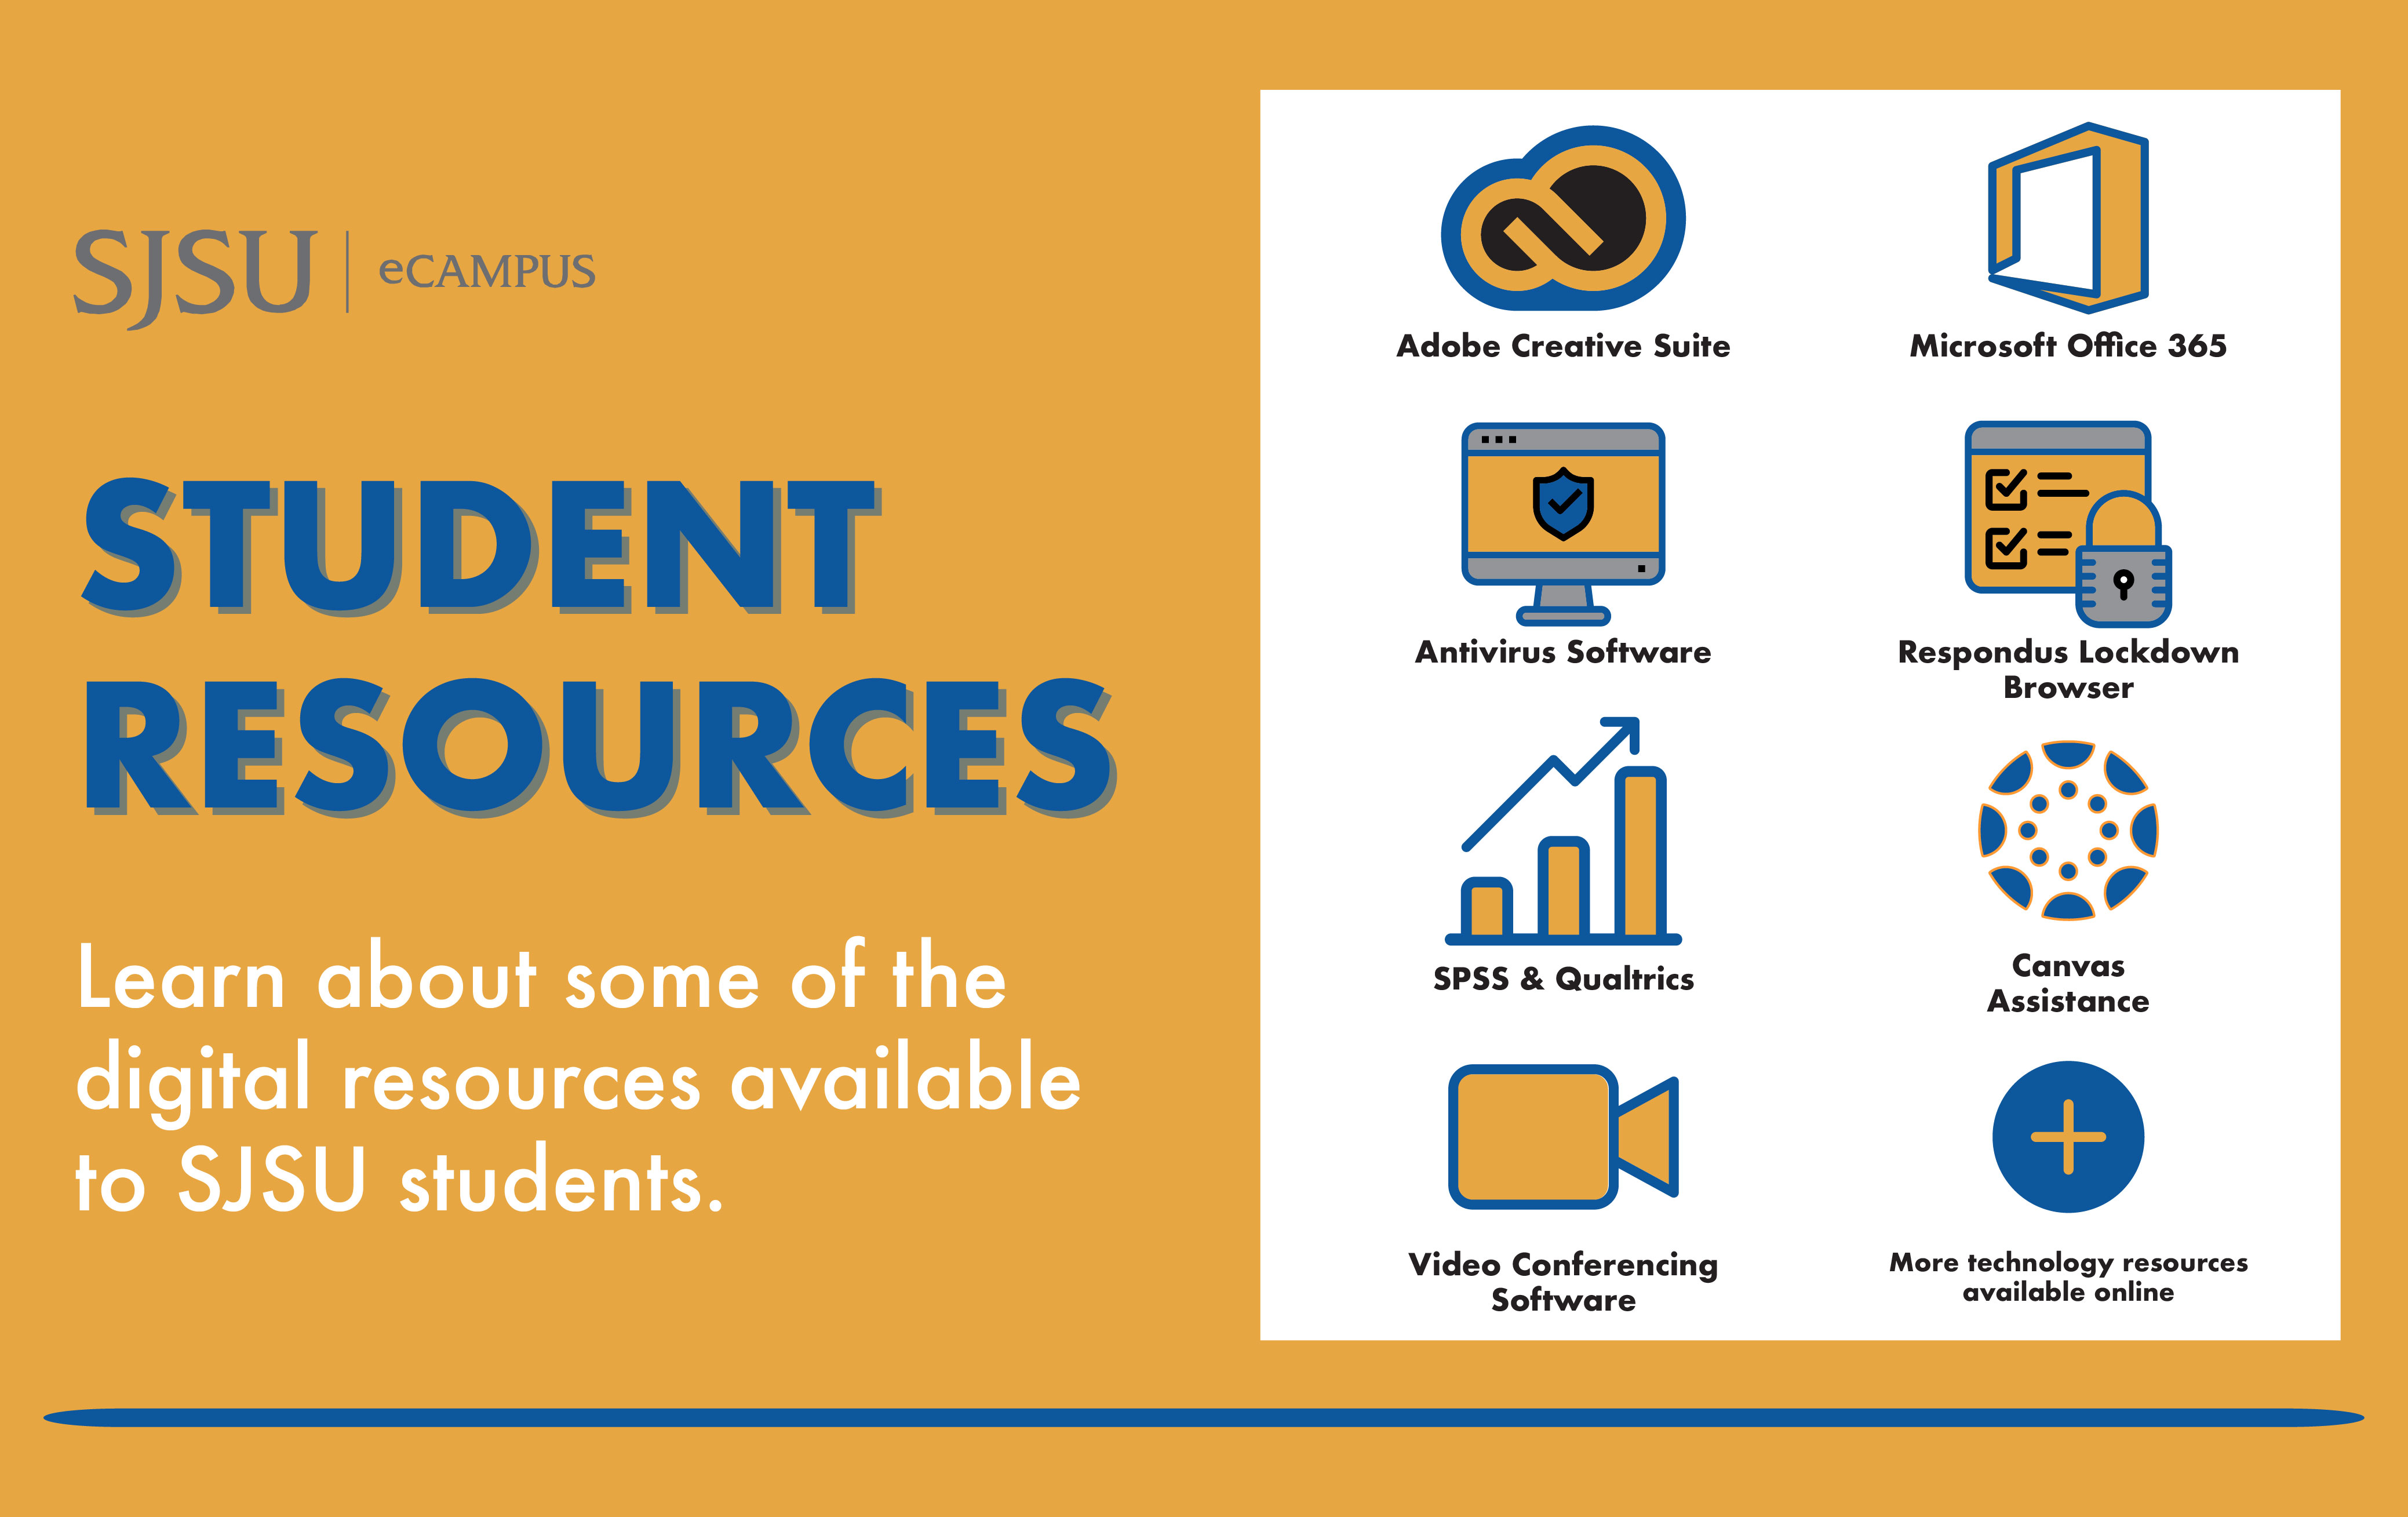 Learn about some of the digital resources available to SJSU students.